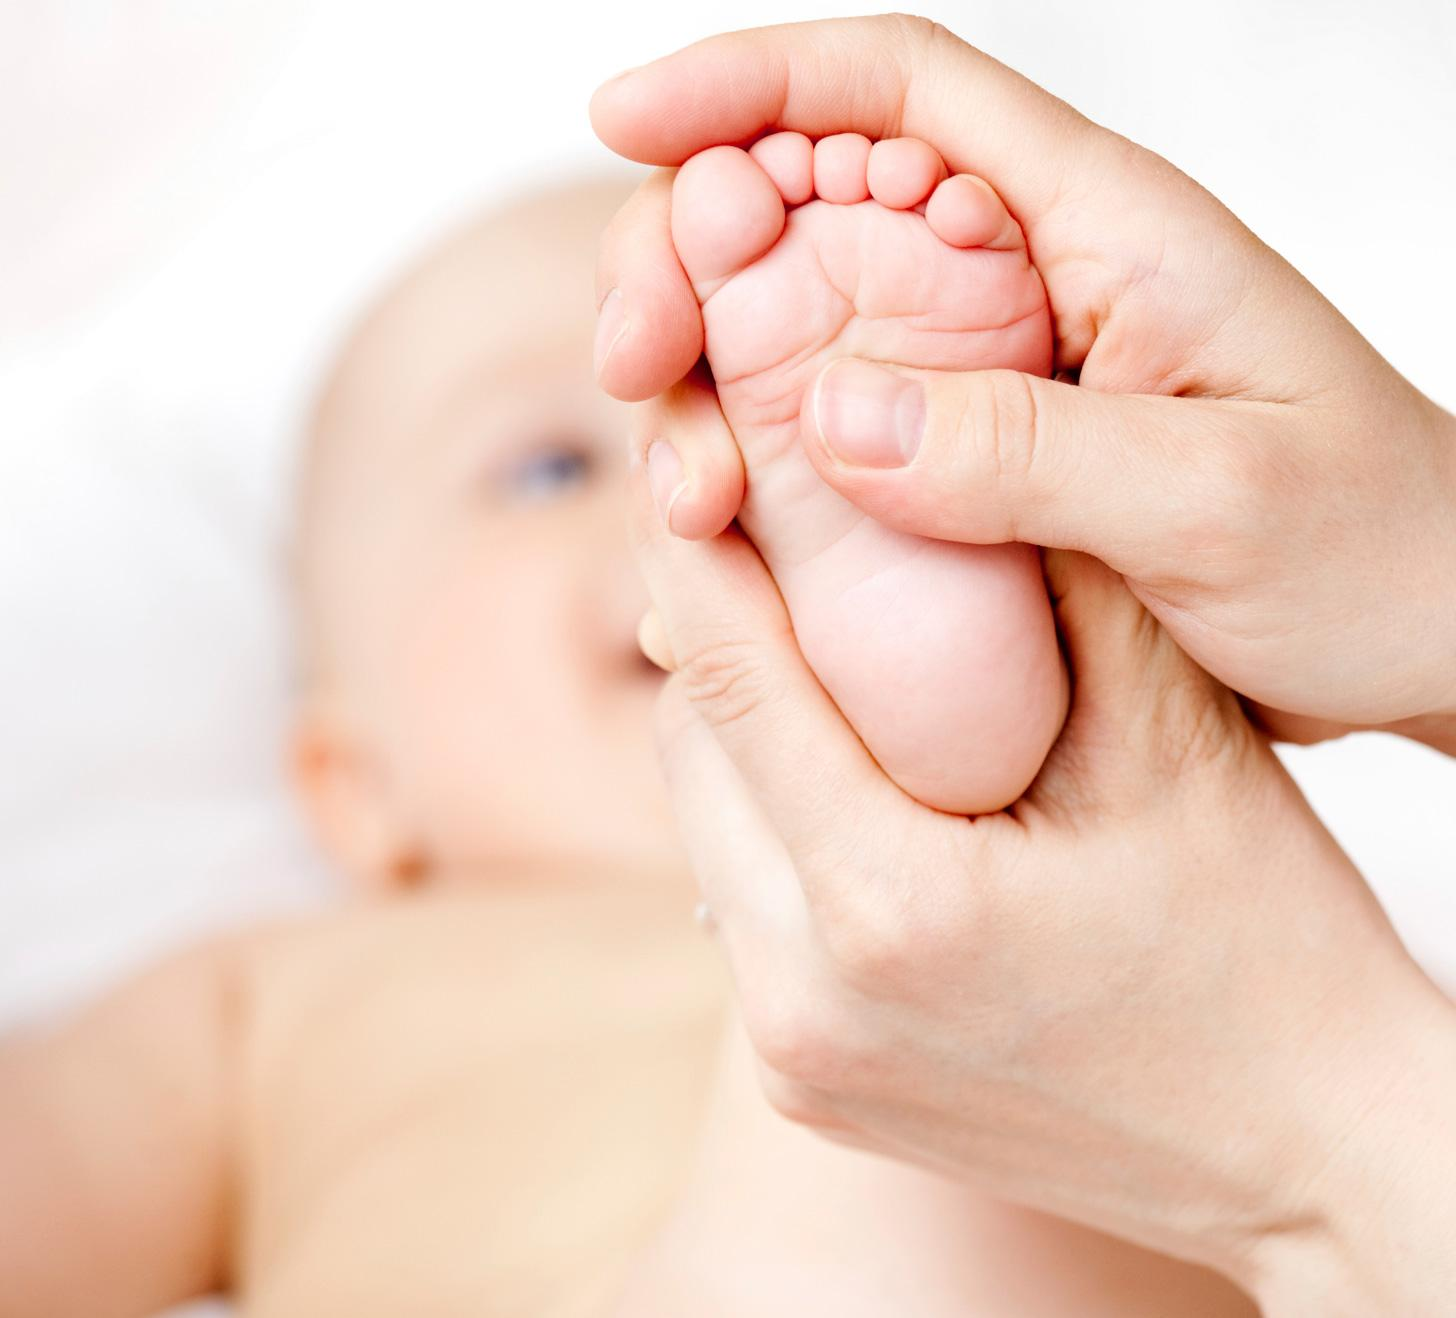 Foot Care For Babies